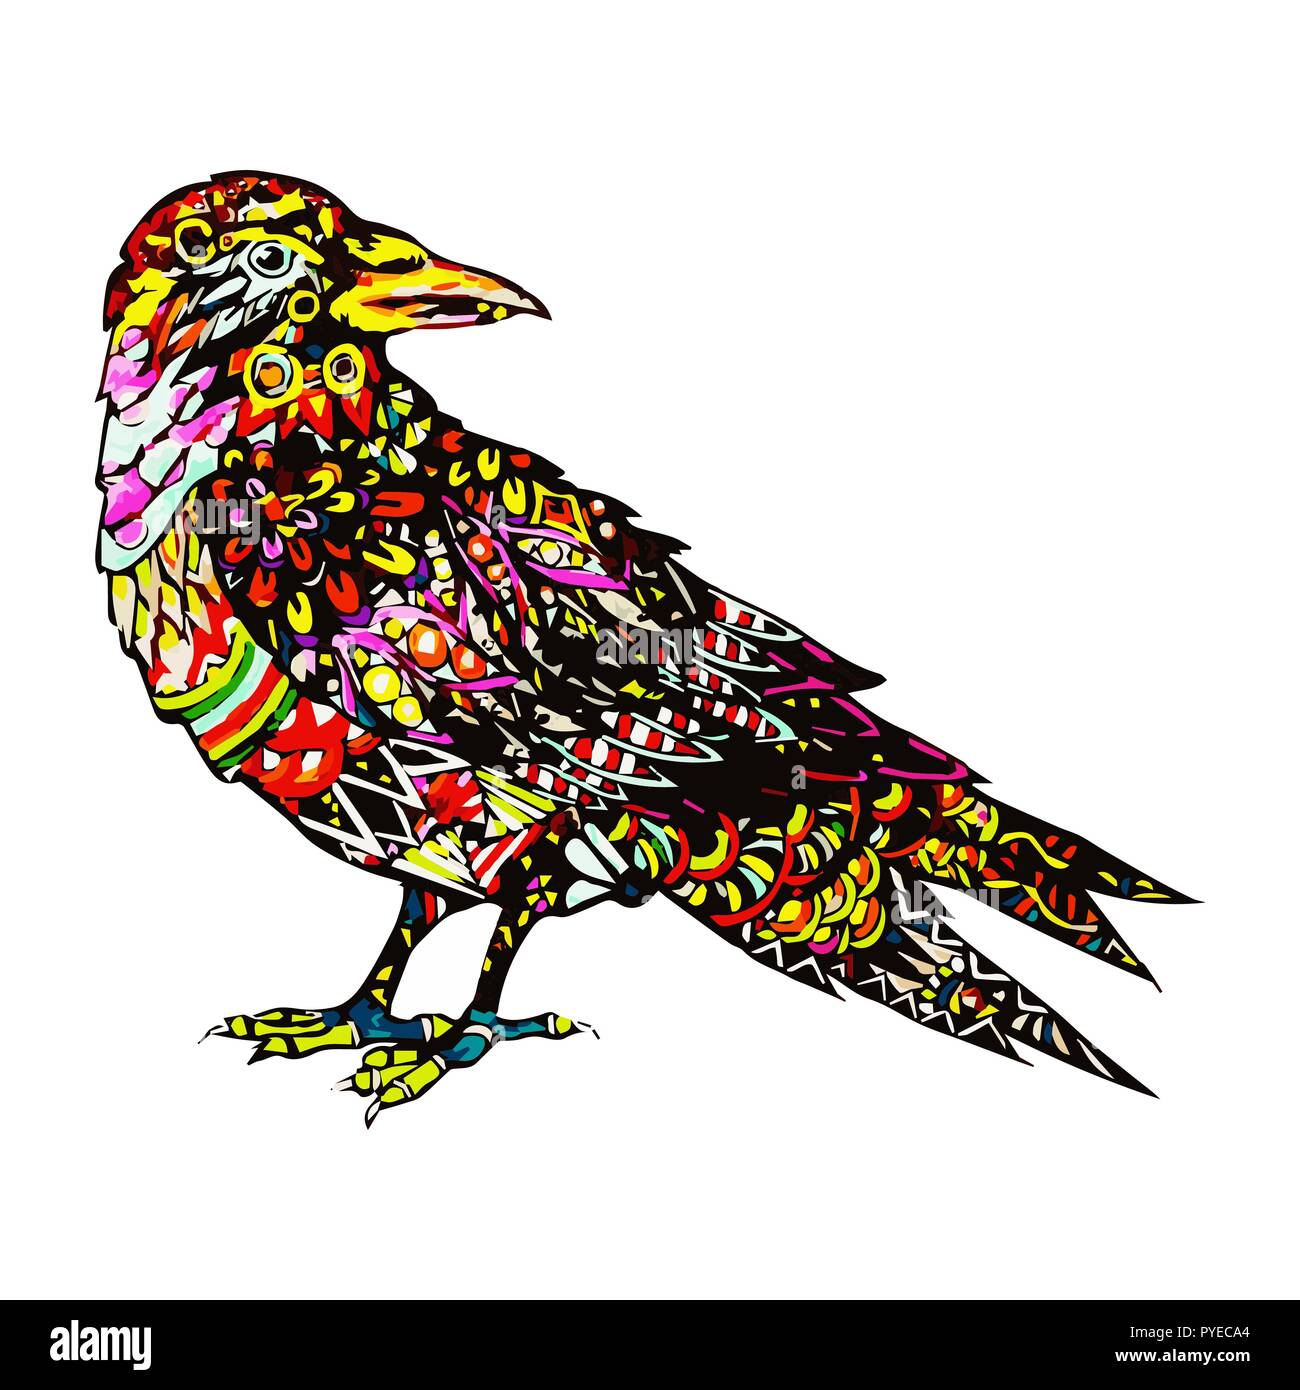 Hand Drawn Bird Sketch For Anti Stress Adult Coloring Book In Zen Tangle Style Vector Illustration For Coloring Page Stock Vector Image Art Alamy